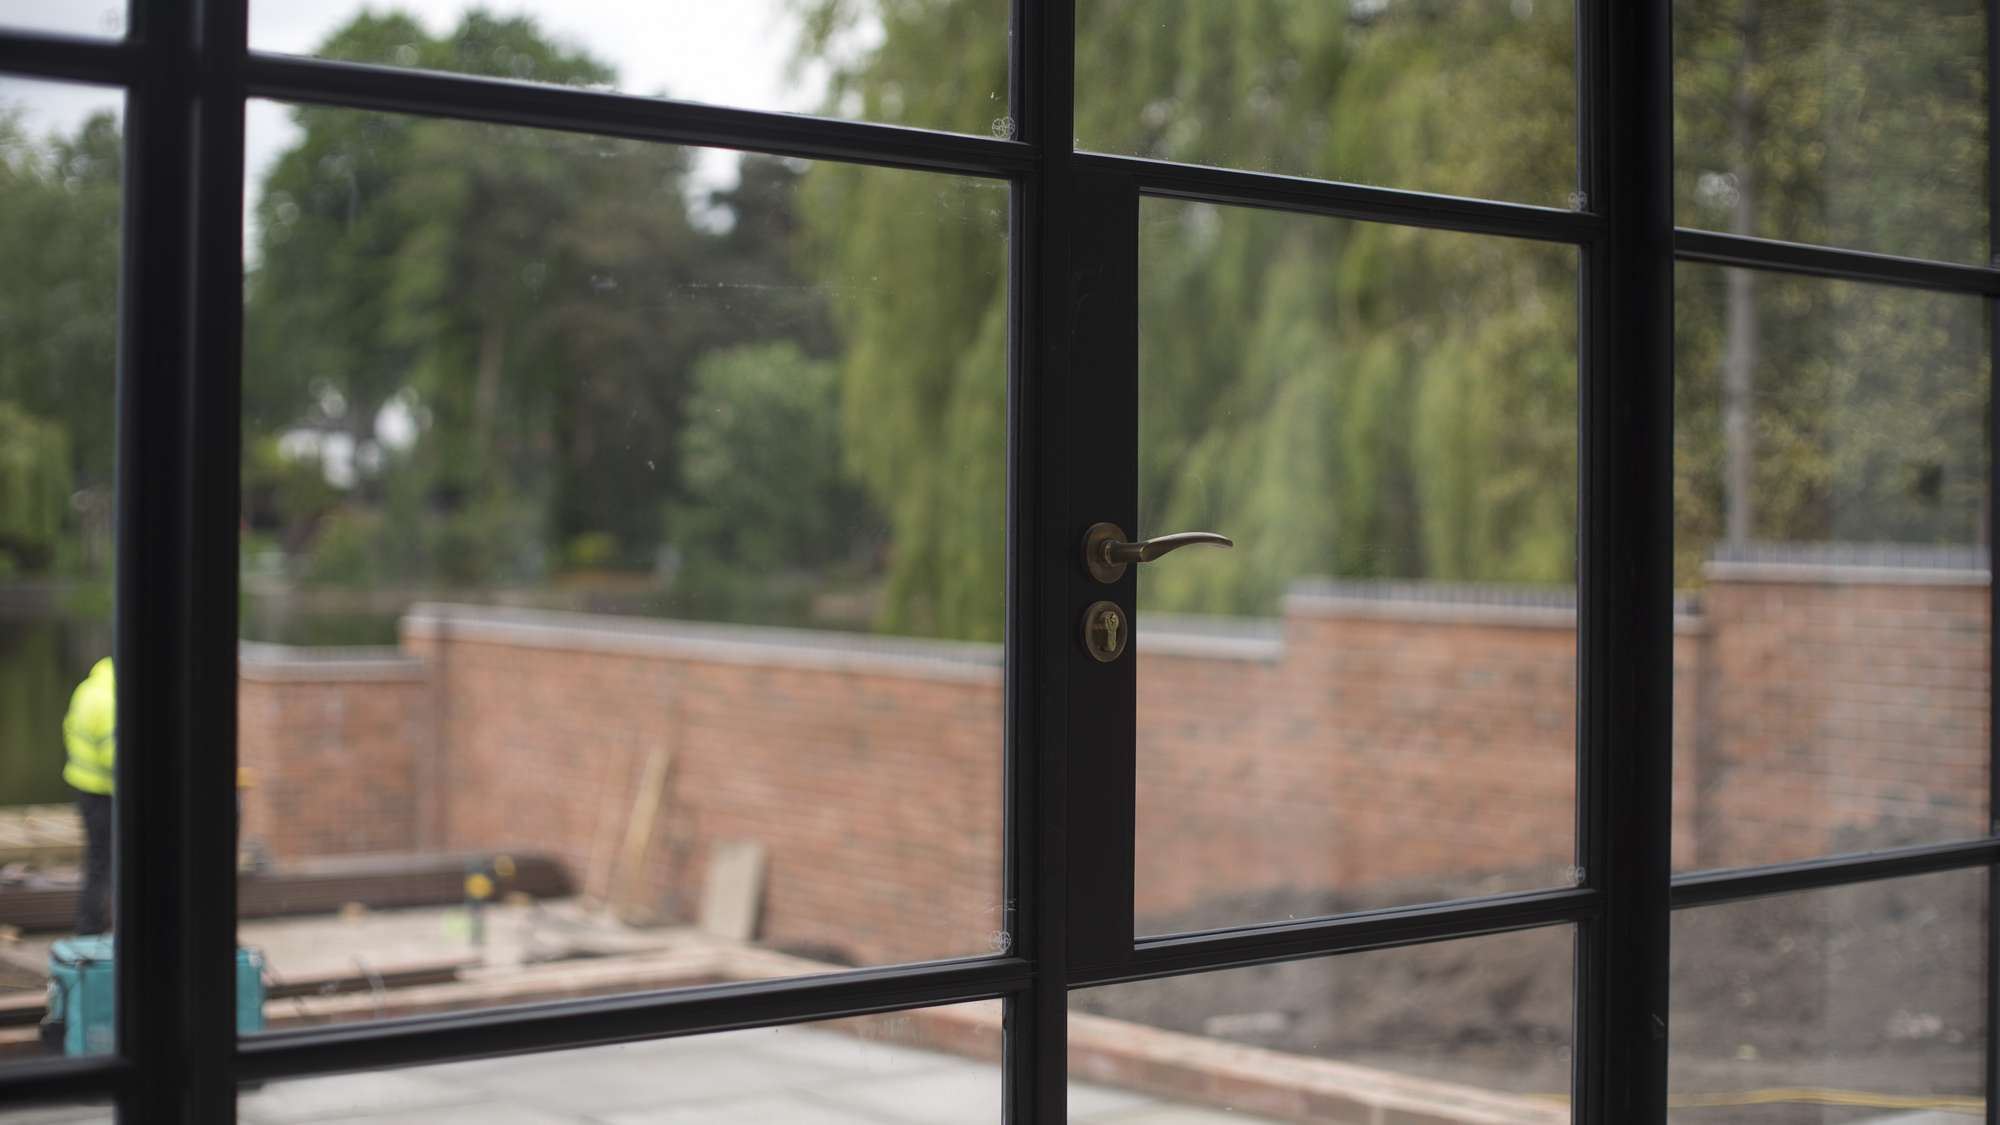 Close up showing the brass look handle on the Crittall screen. & Crittall Screens Case Study | Stoke on Trent